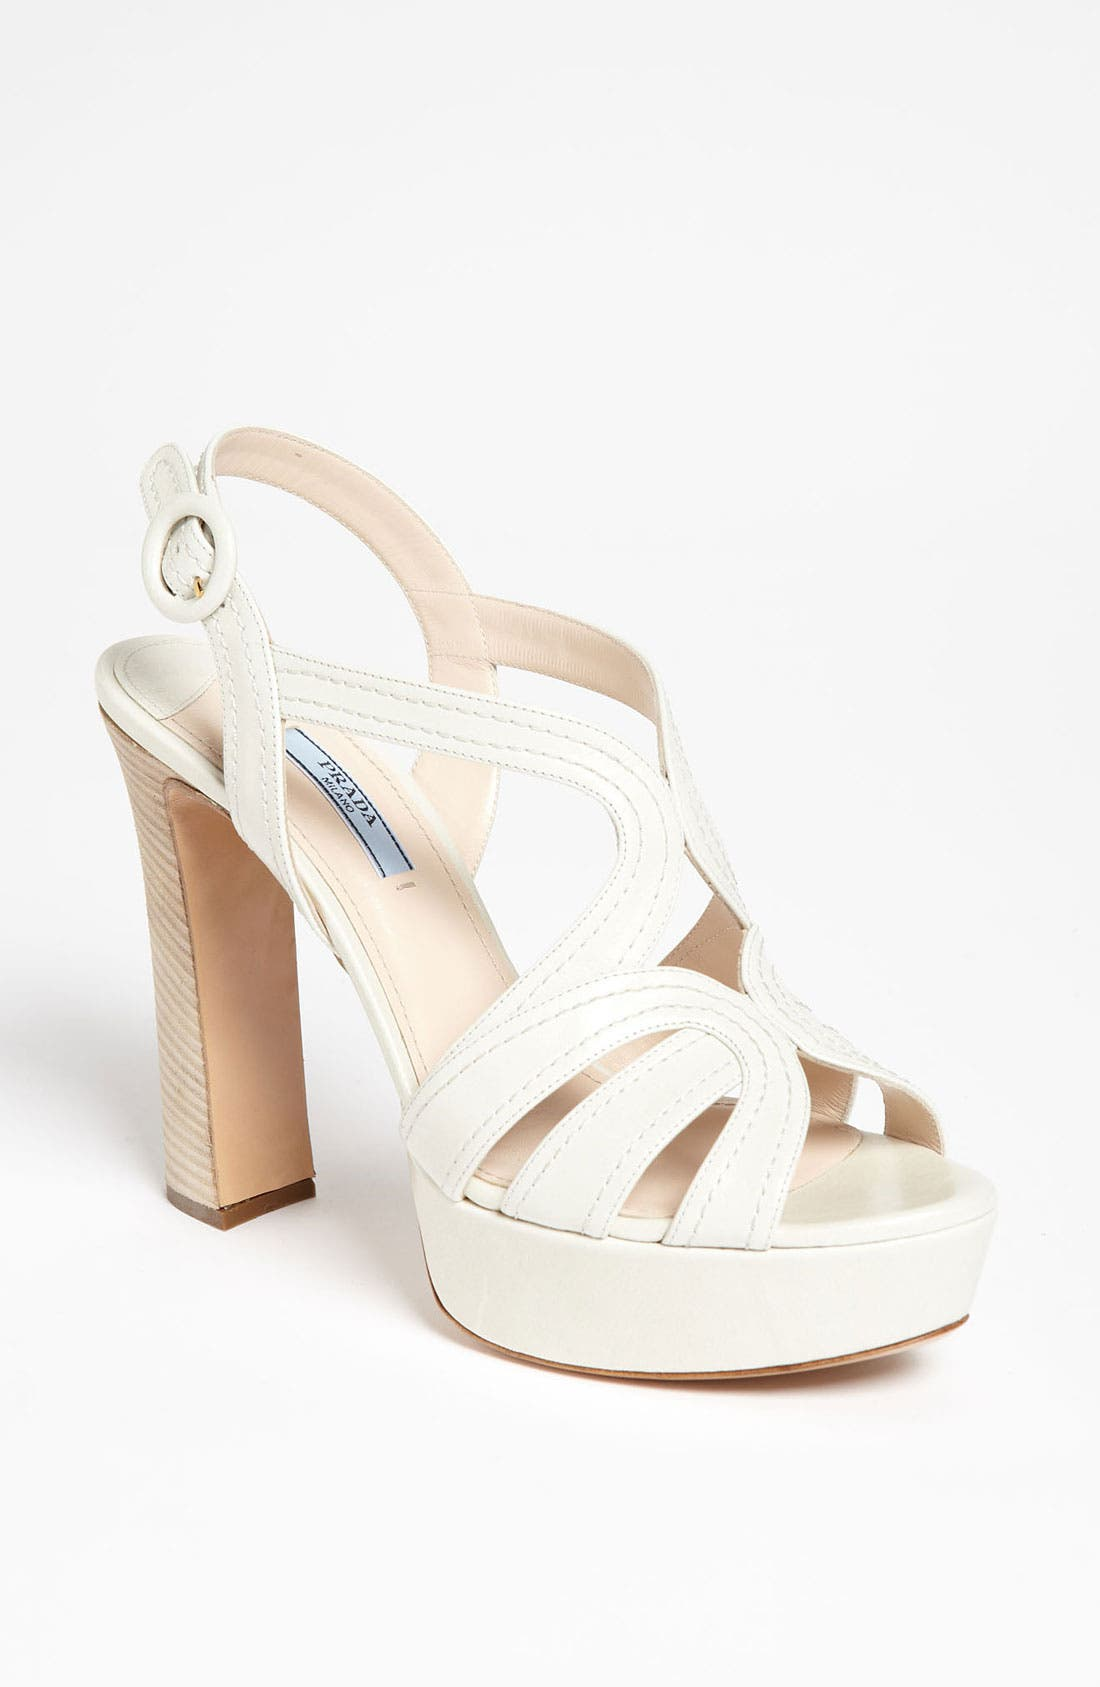 Blonde Heel Sandal,                         Main,                         color, 100